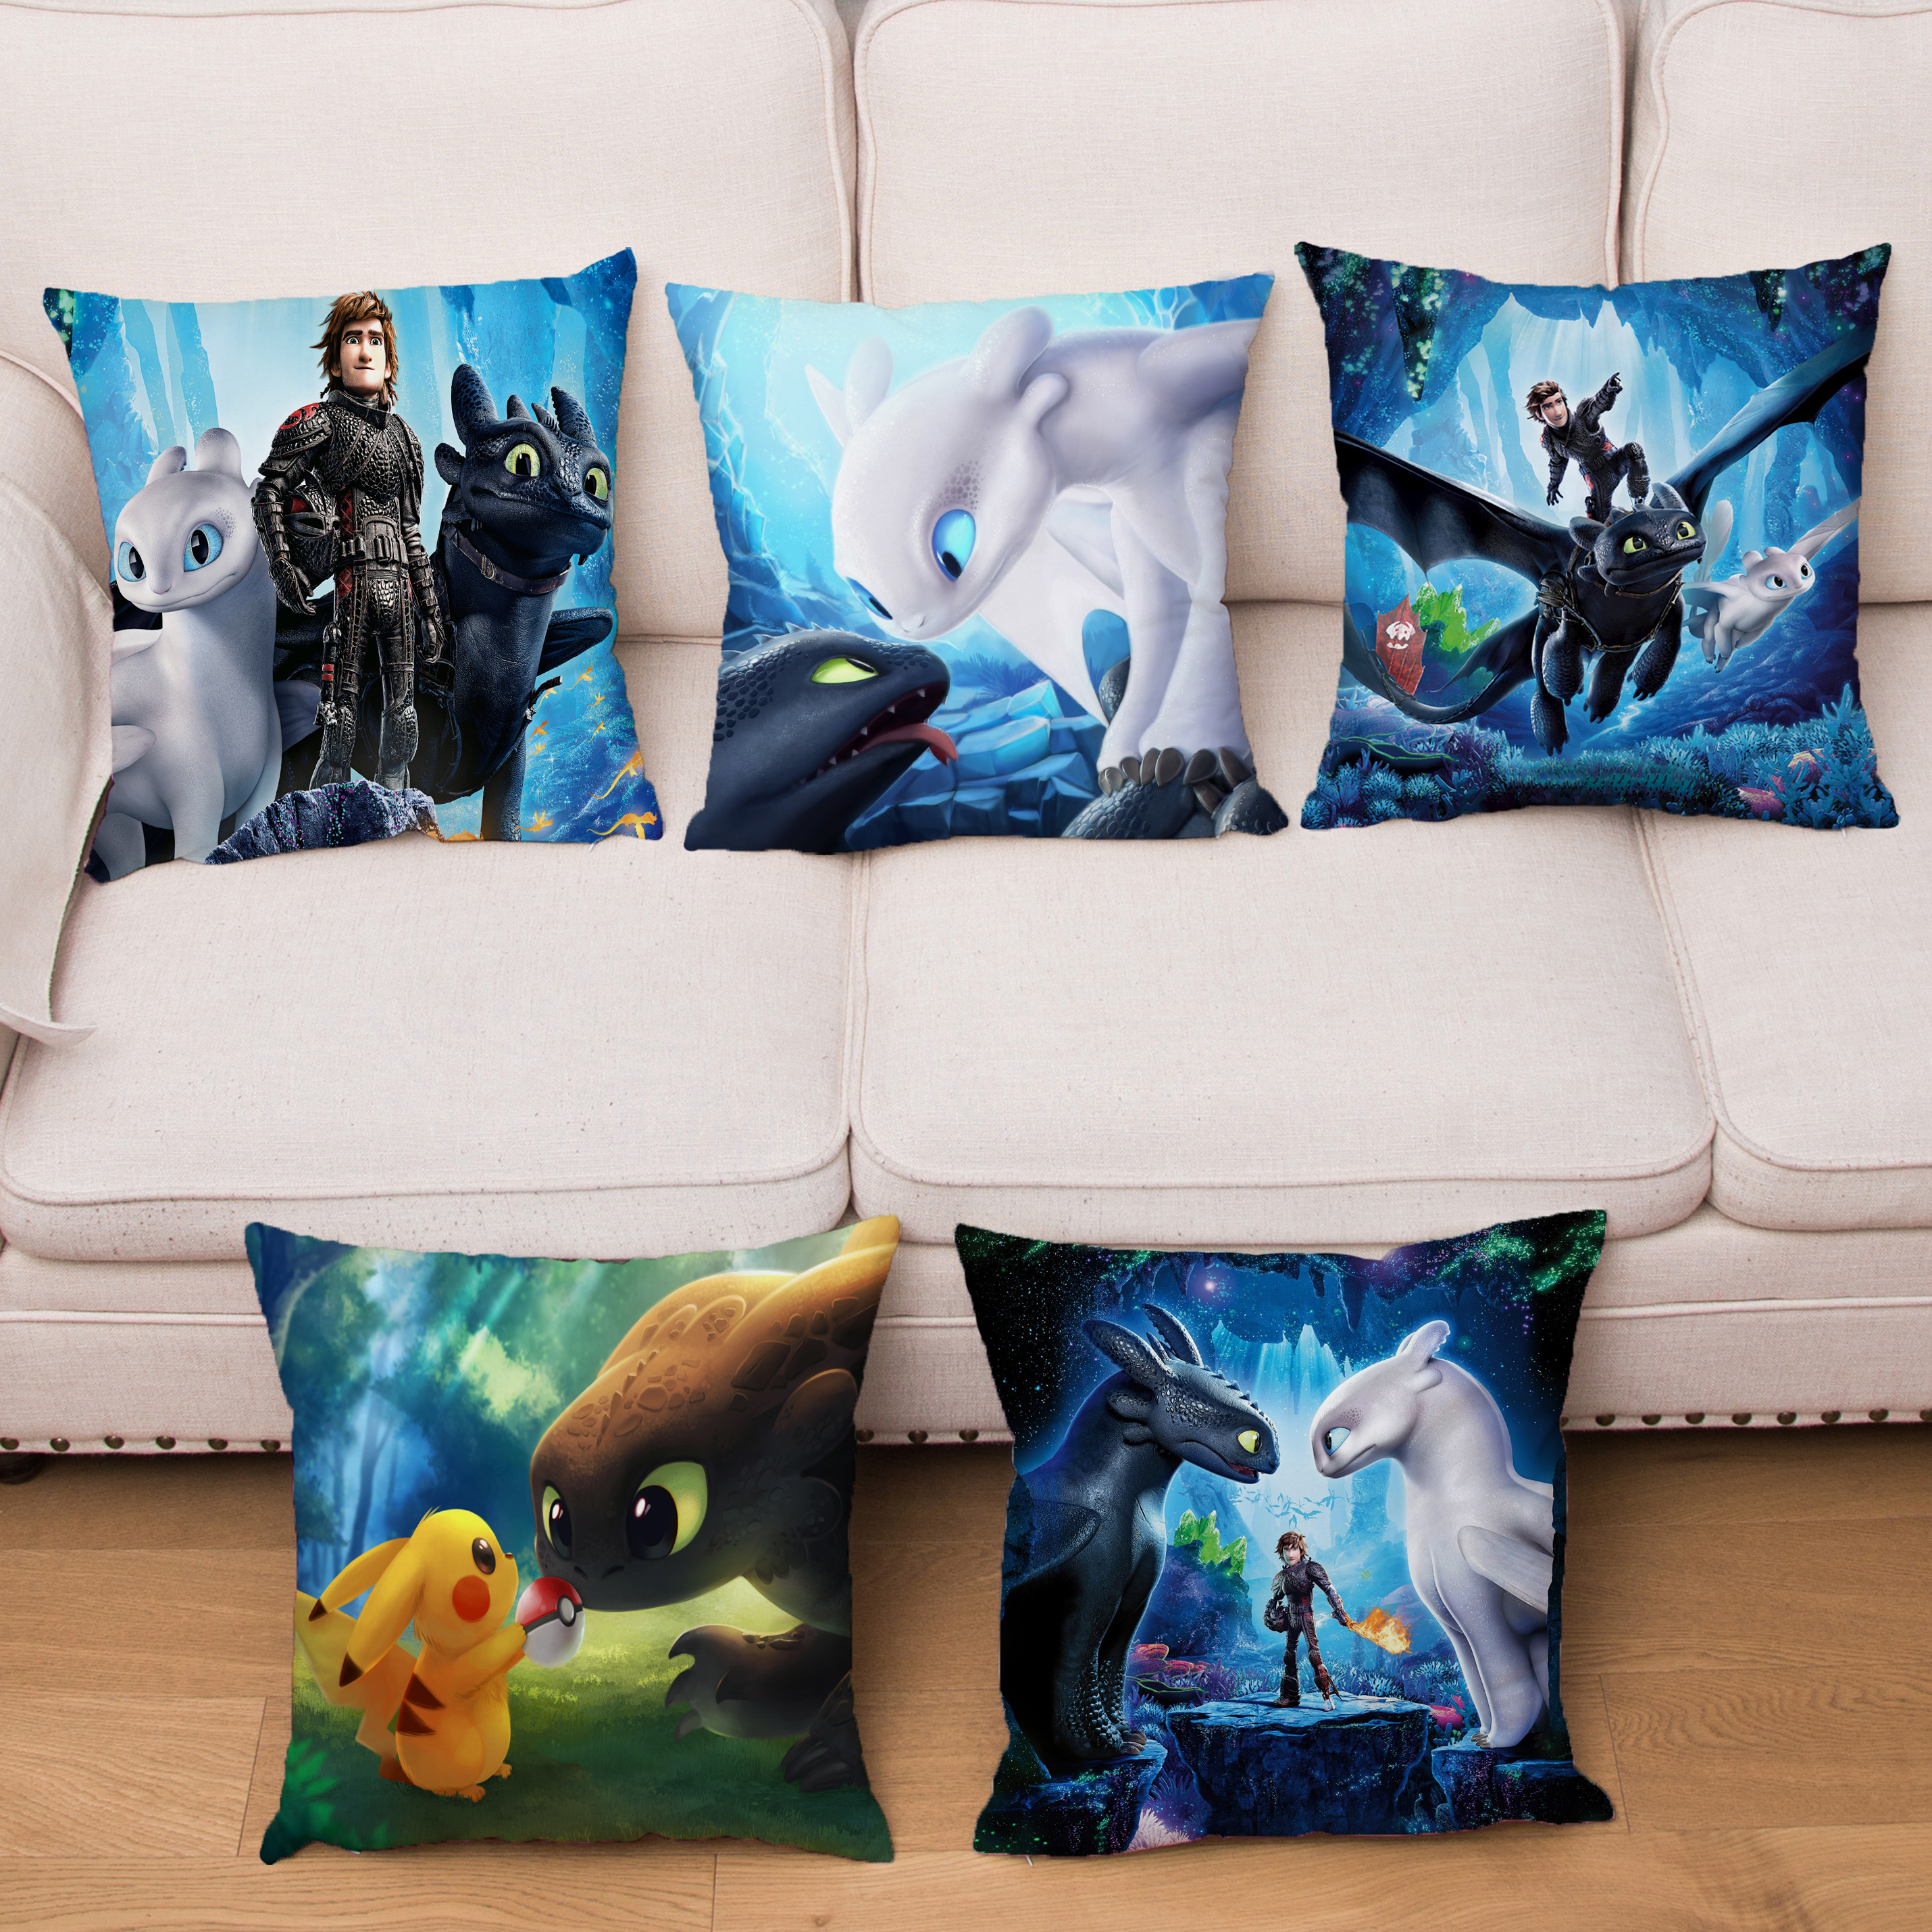 Anime How To Train Your Dragon Cushion Cover Cute Dinosaur Print Pillows Covers Short Plush Pillowcase Home Decor Pillow Case